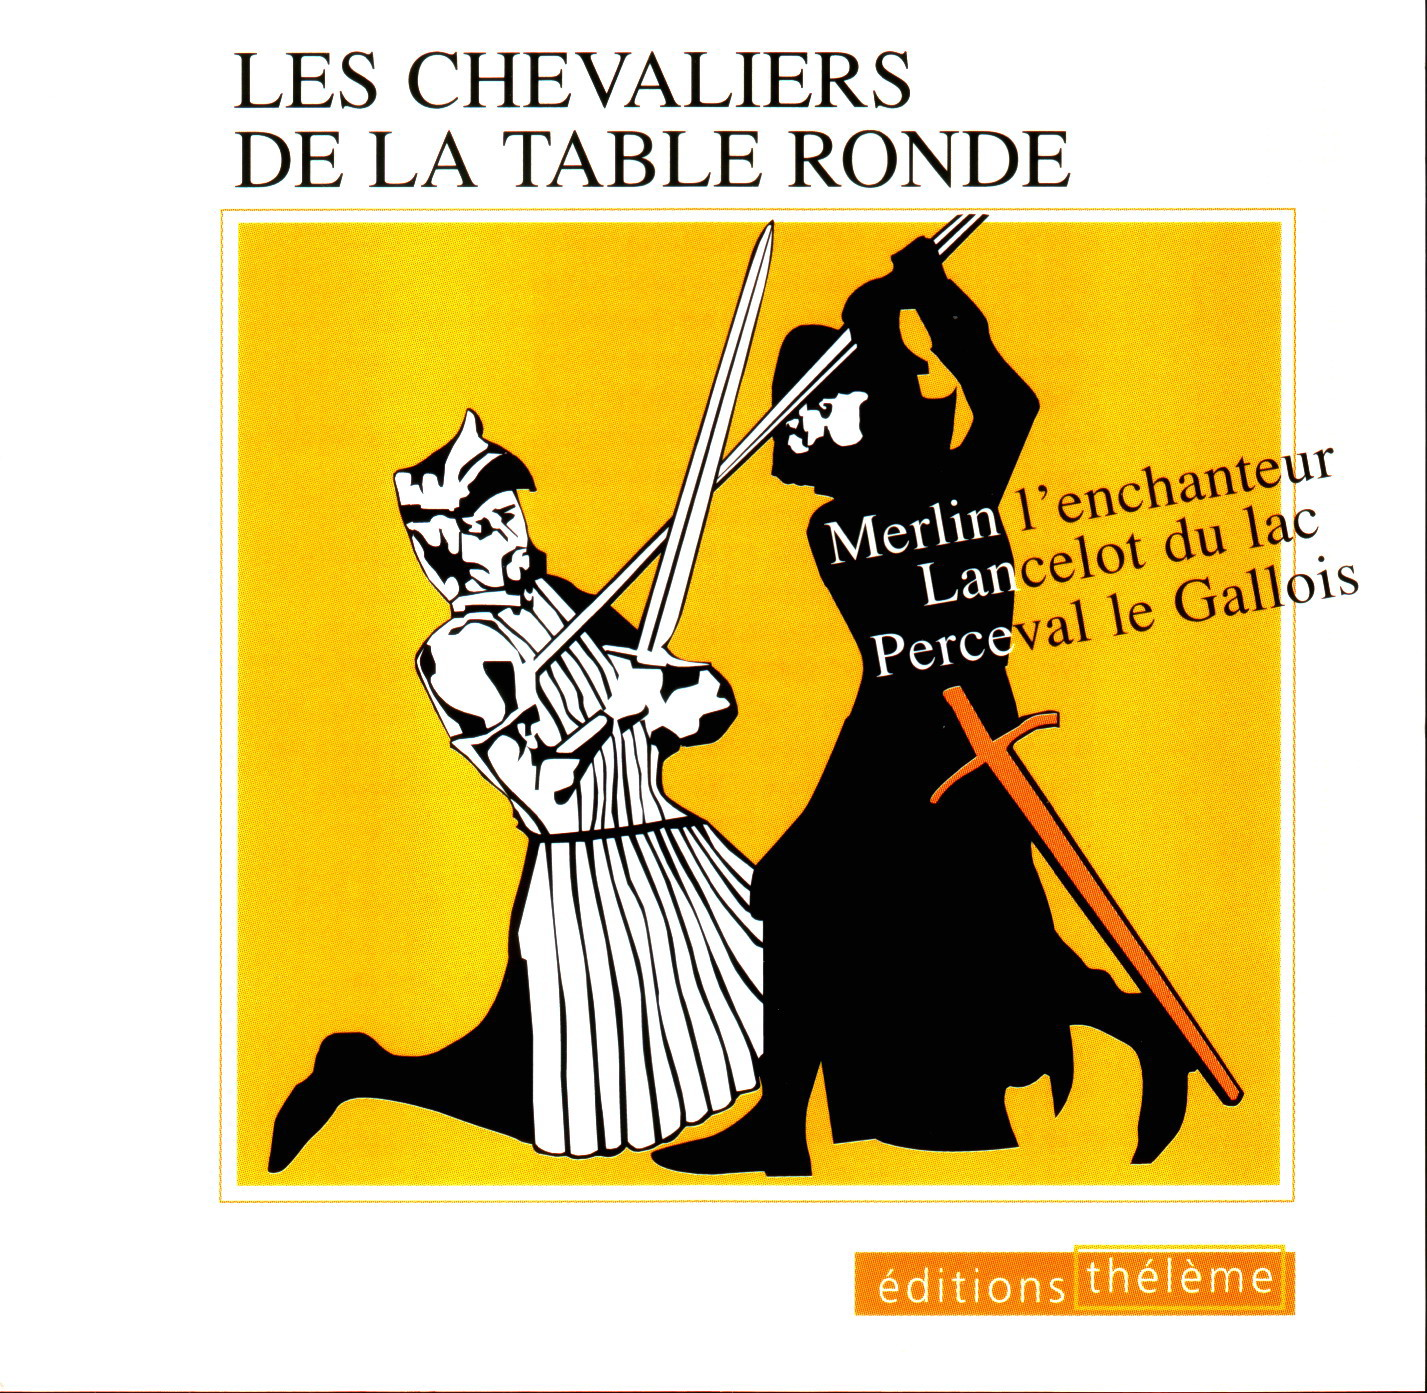 Les_chevaliers_de_la_Table_Ronde_1.jpg